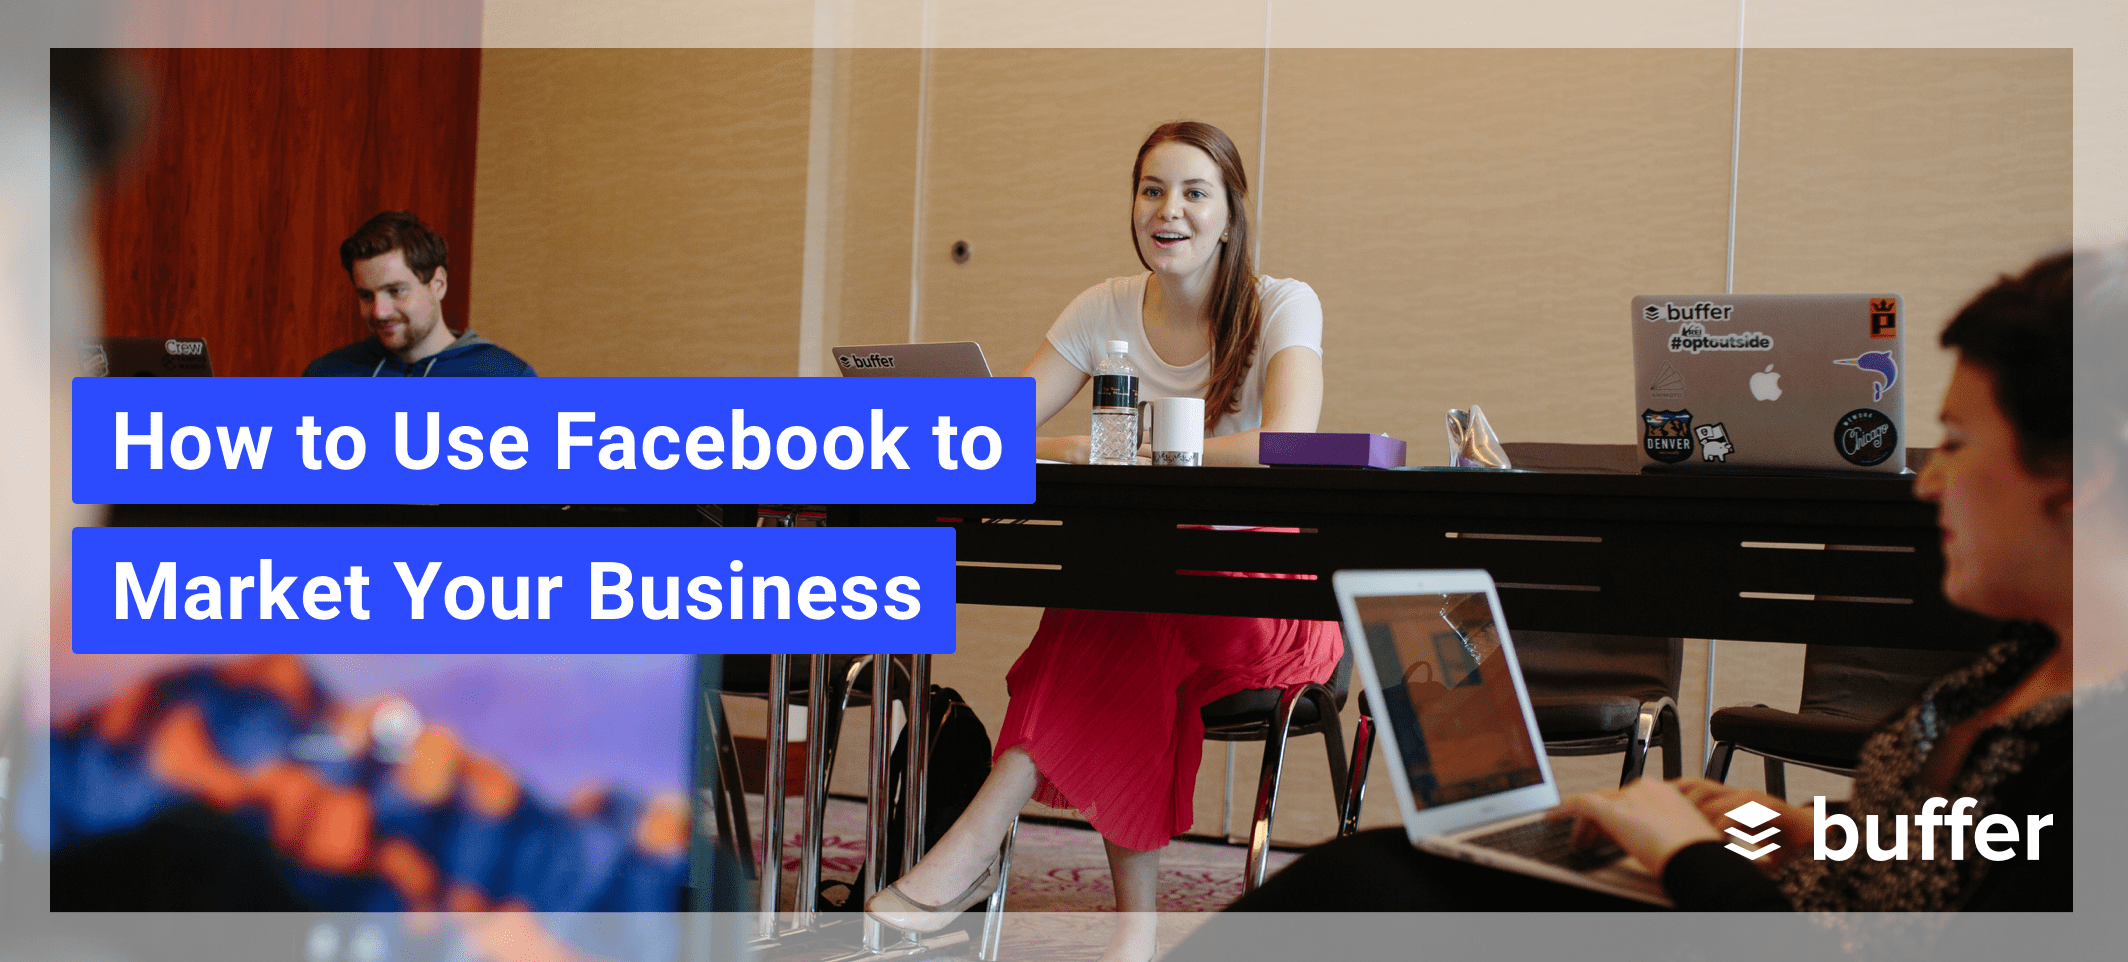 Facebook Marketing: How to Use Facebook to Market Your Business